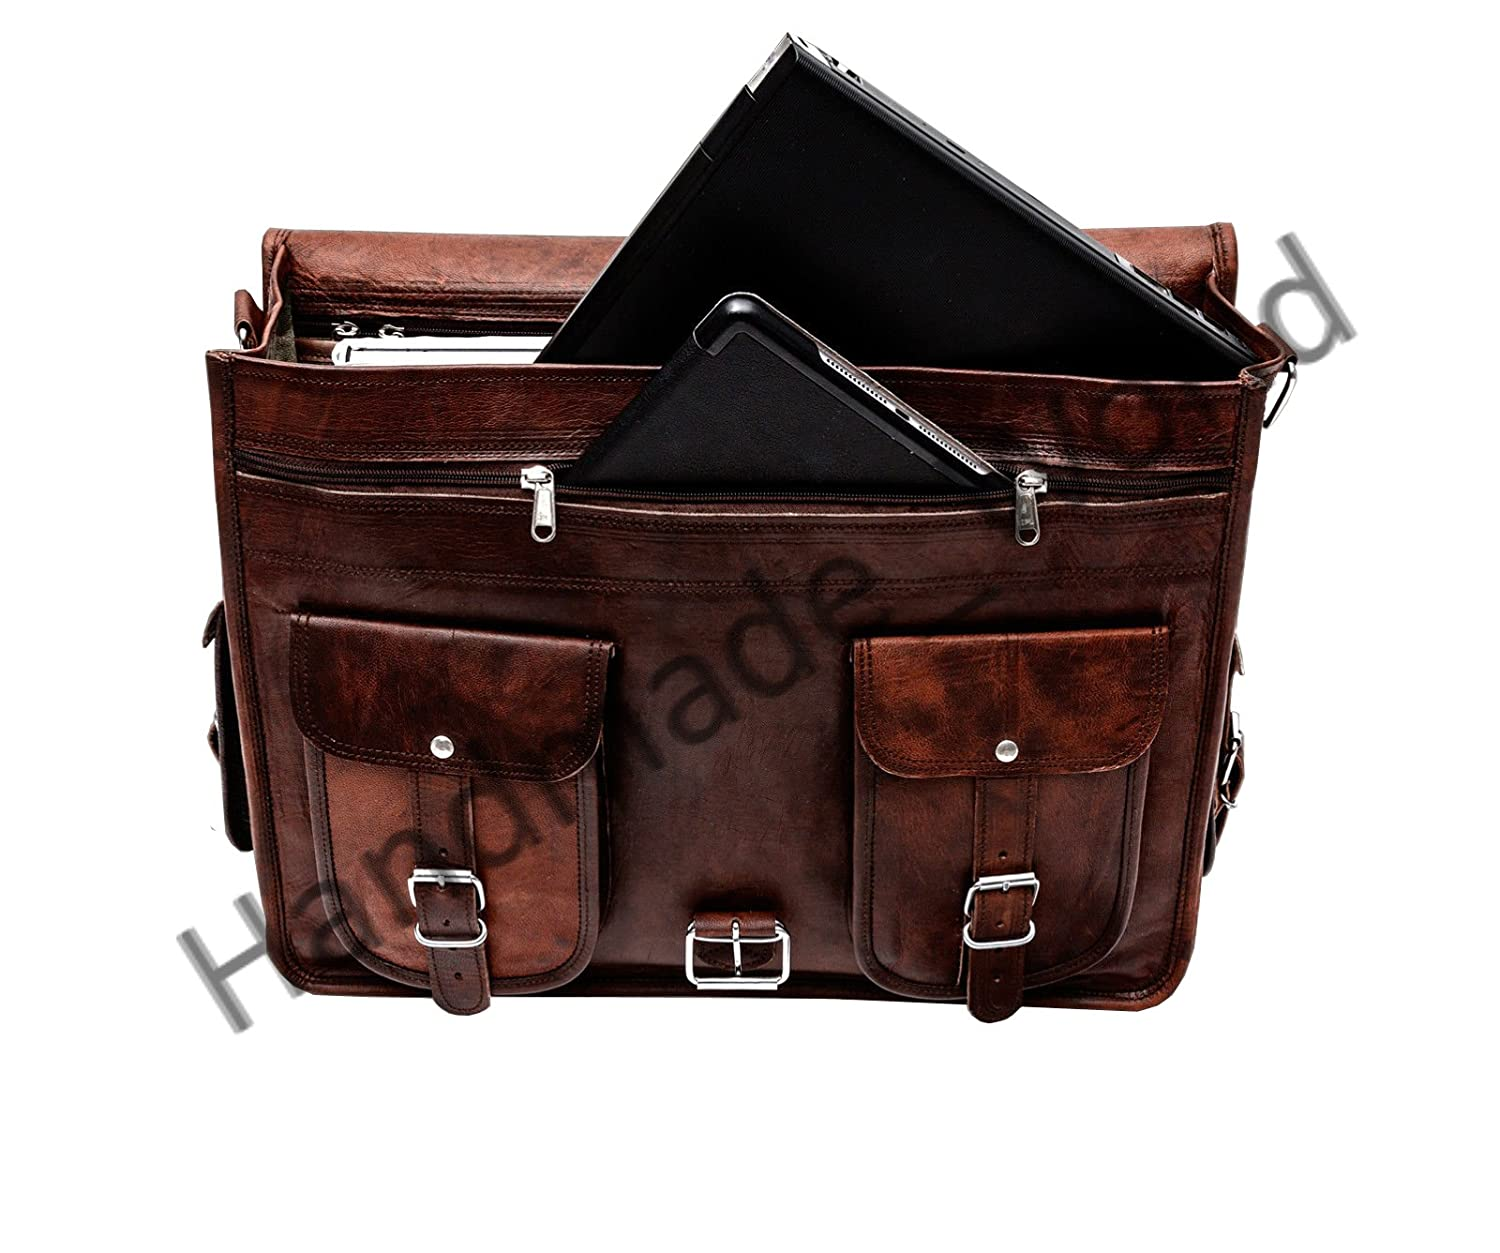 Amazon.com  Handmade World Leather Messenger Bag - 16 Inch Briefcases for Men  Brown Leather Laptop Bag- Vintage Look Satchel  Computers   Accessories 9336387170be3